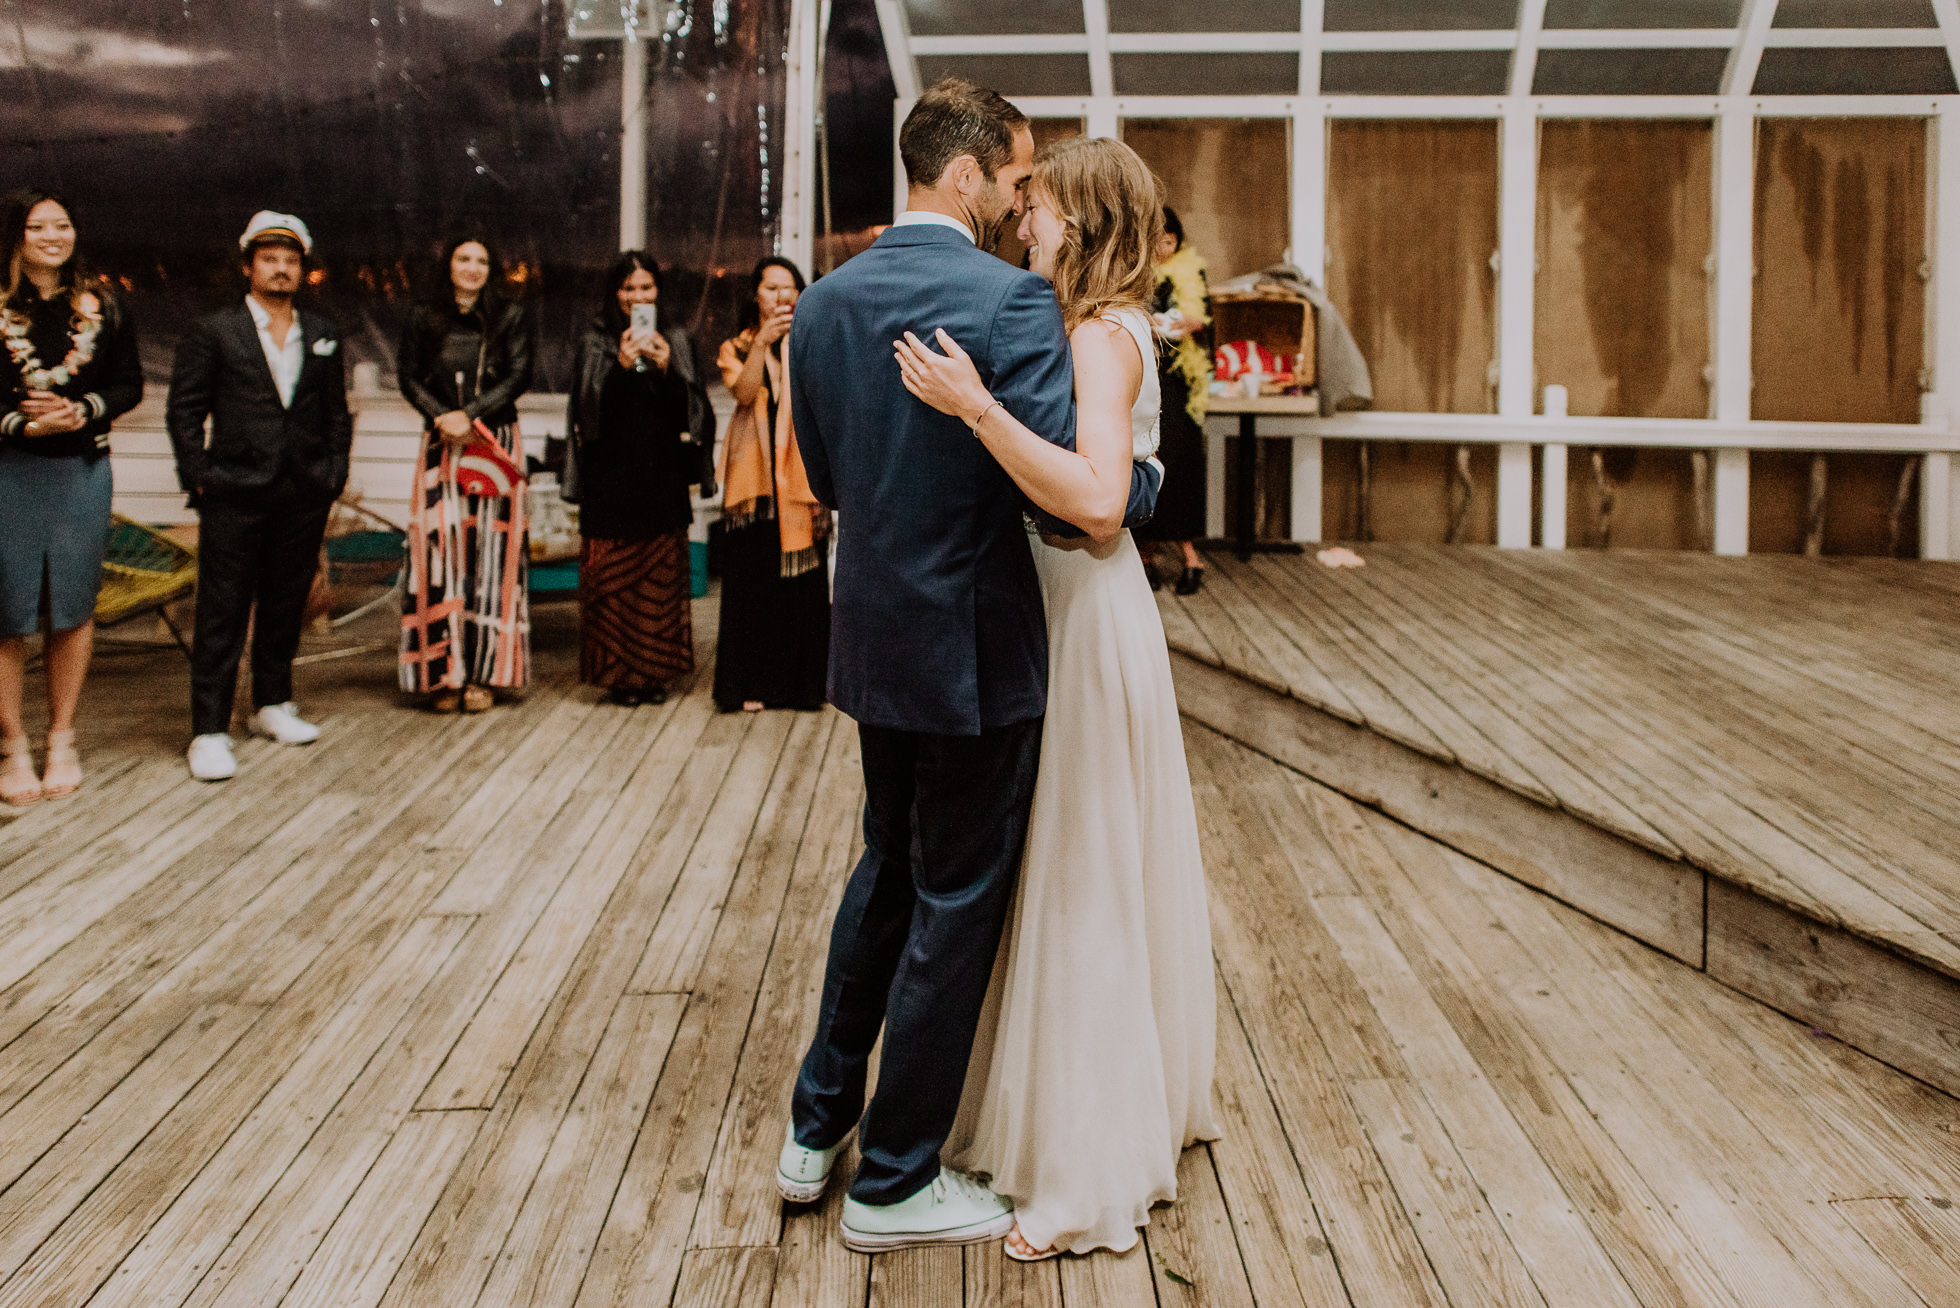 bride and groom first dance at the surf lodge reception Montauk wedding photographed by Traverse the Tides